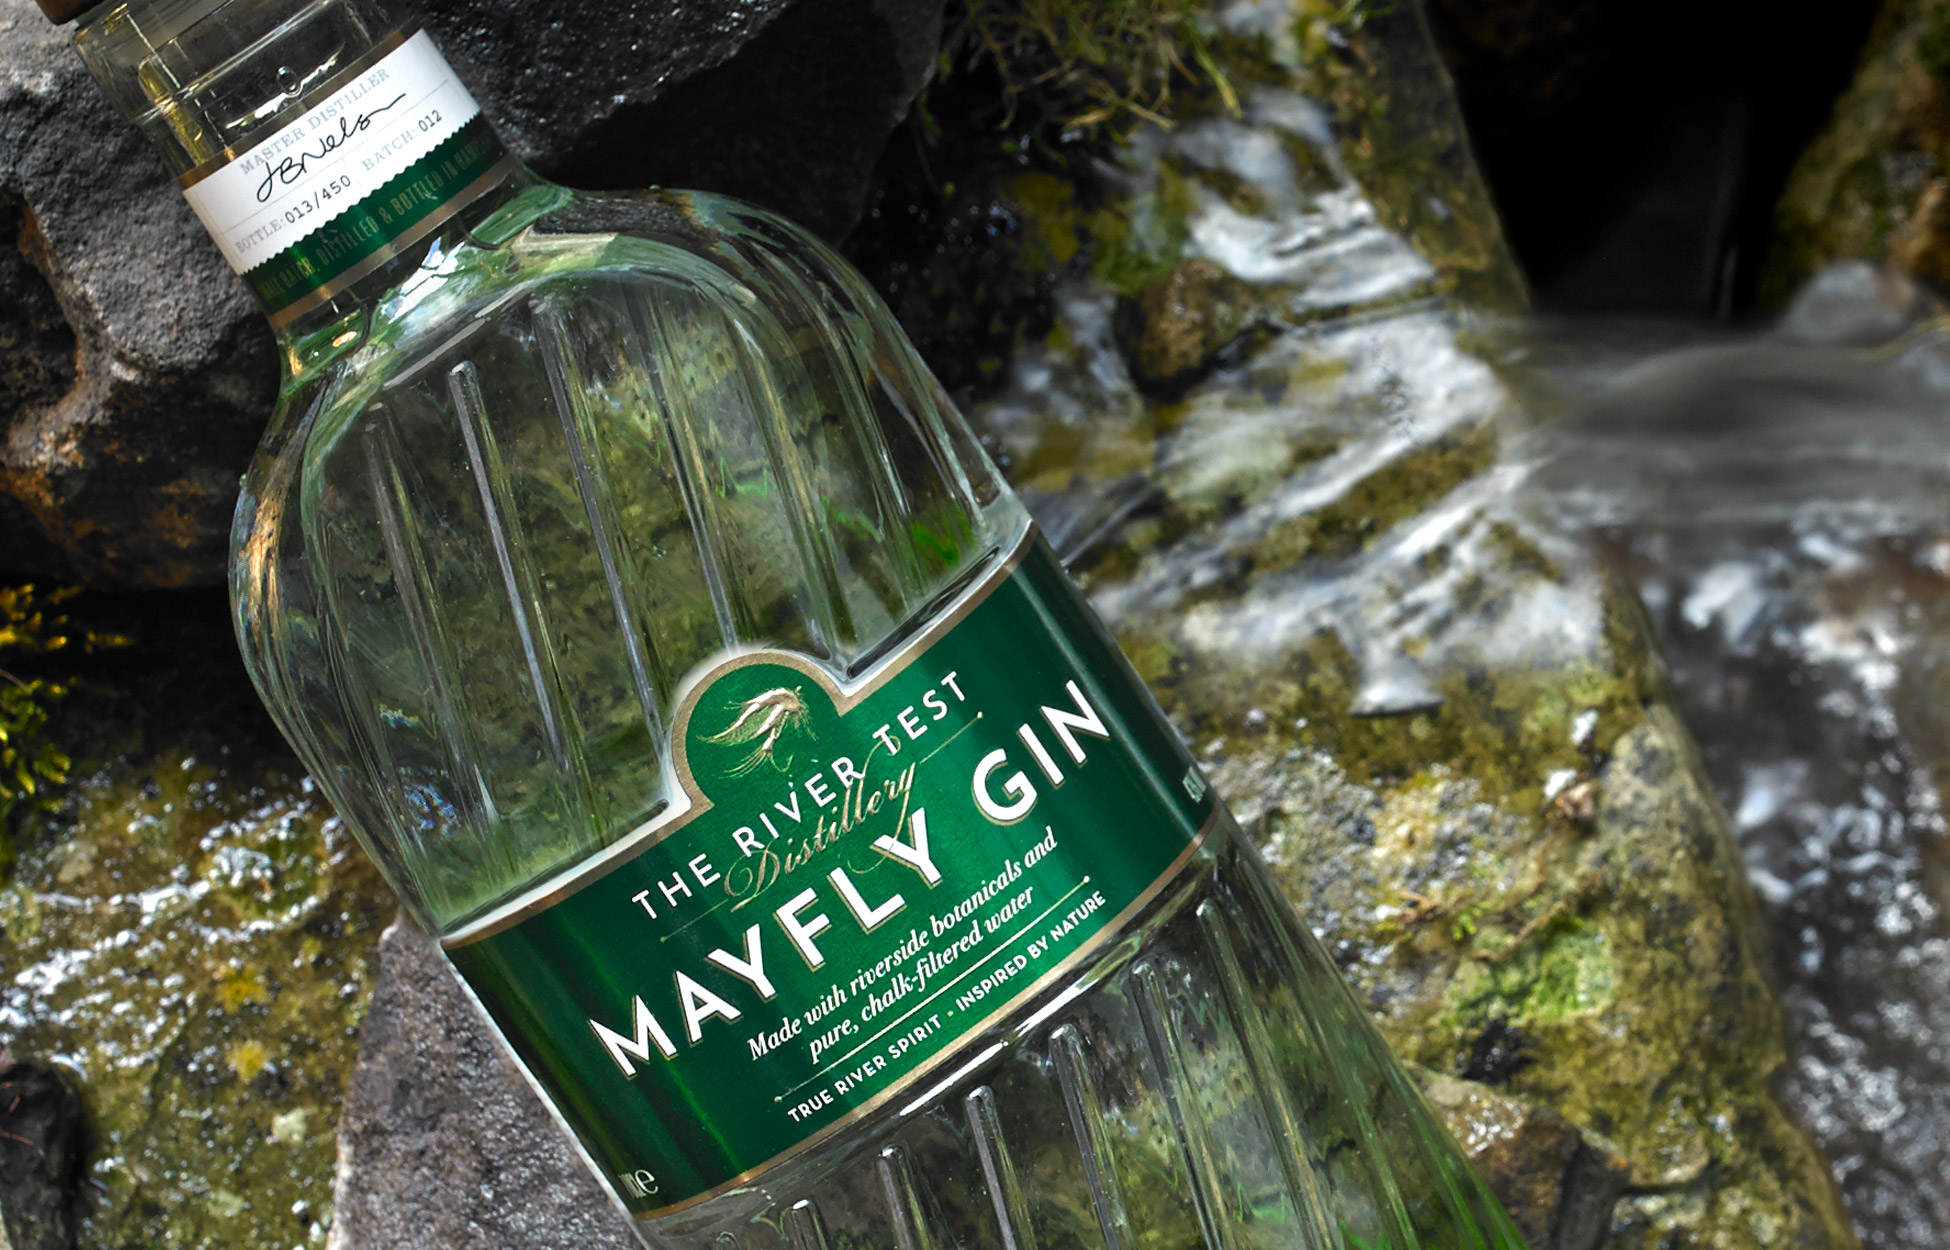 The River Test Mayfly Gin